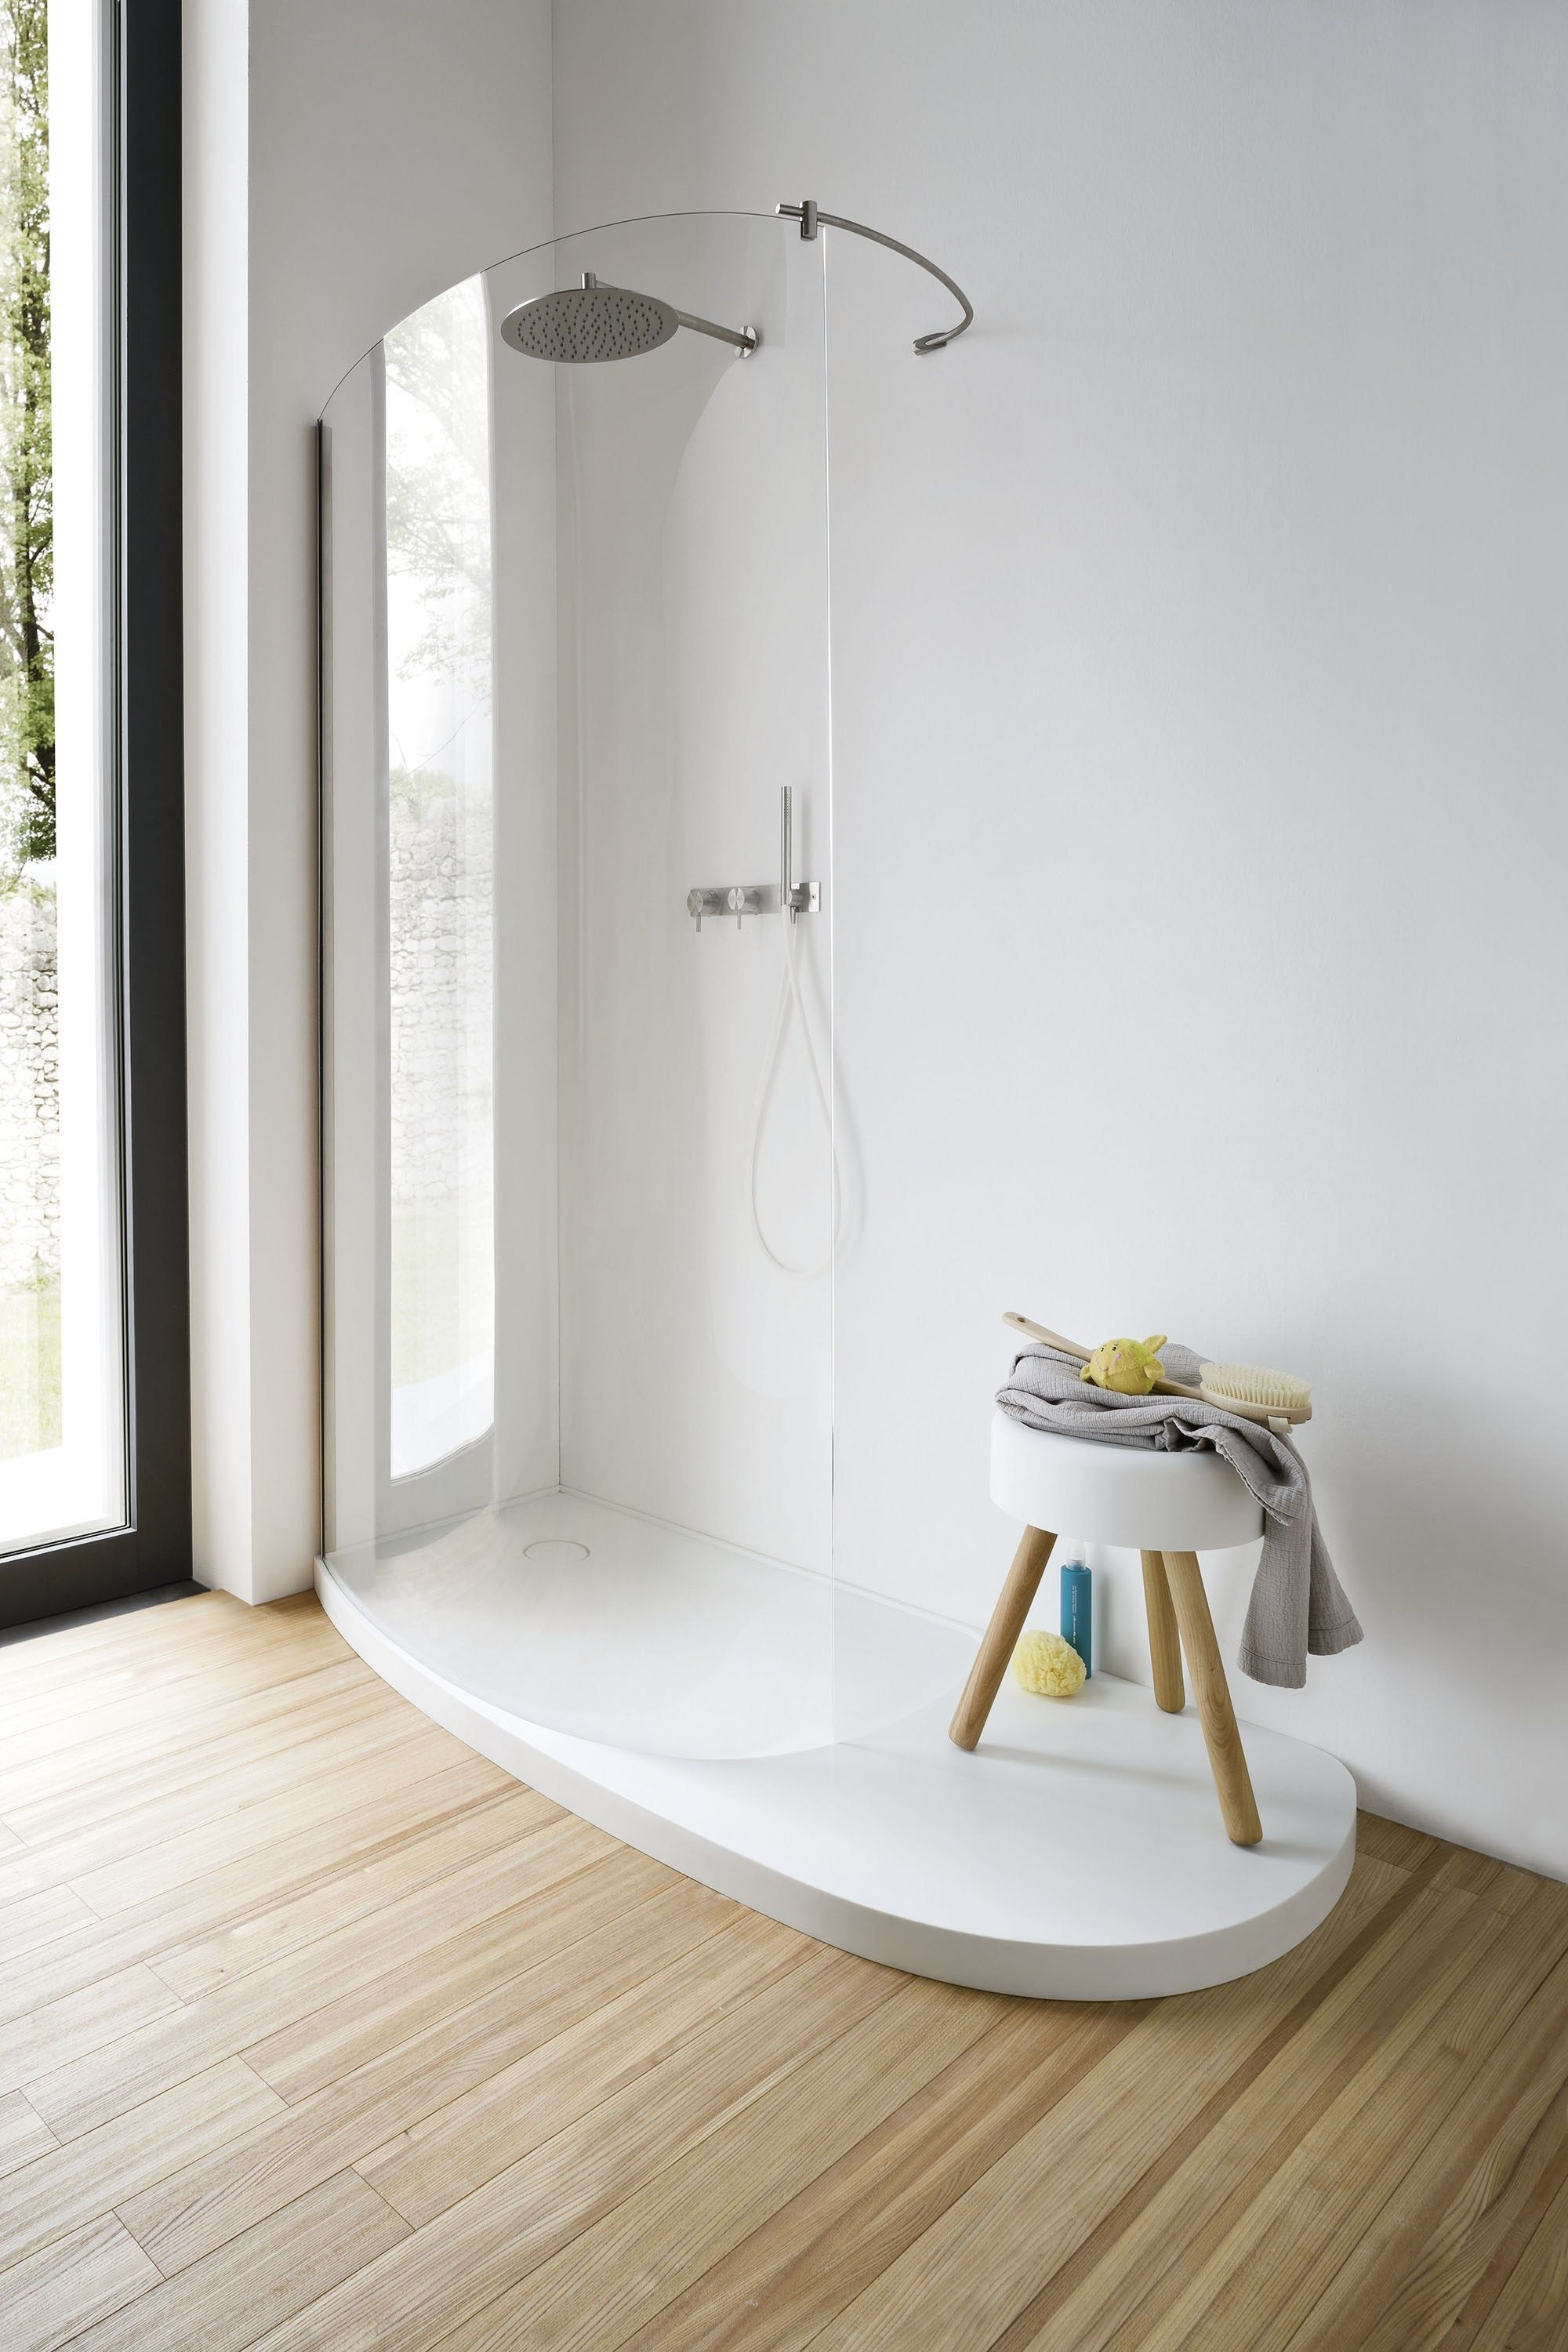 Design Corian® shower tray FONTE by @rexadesign